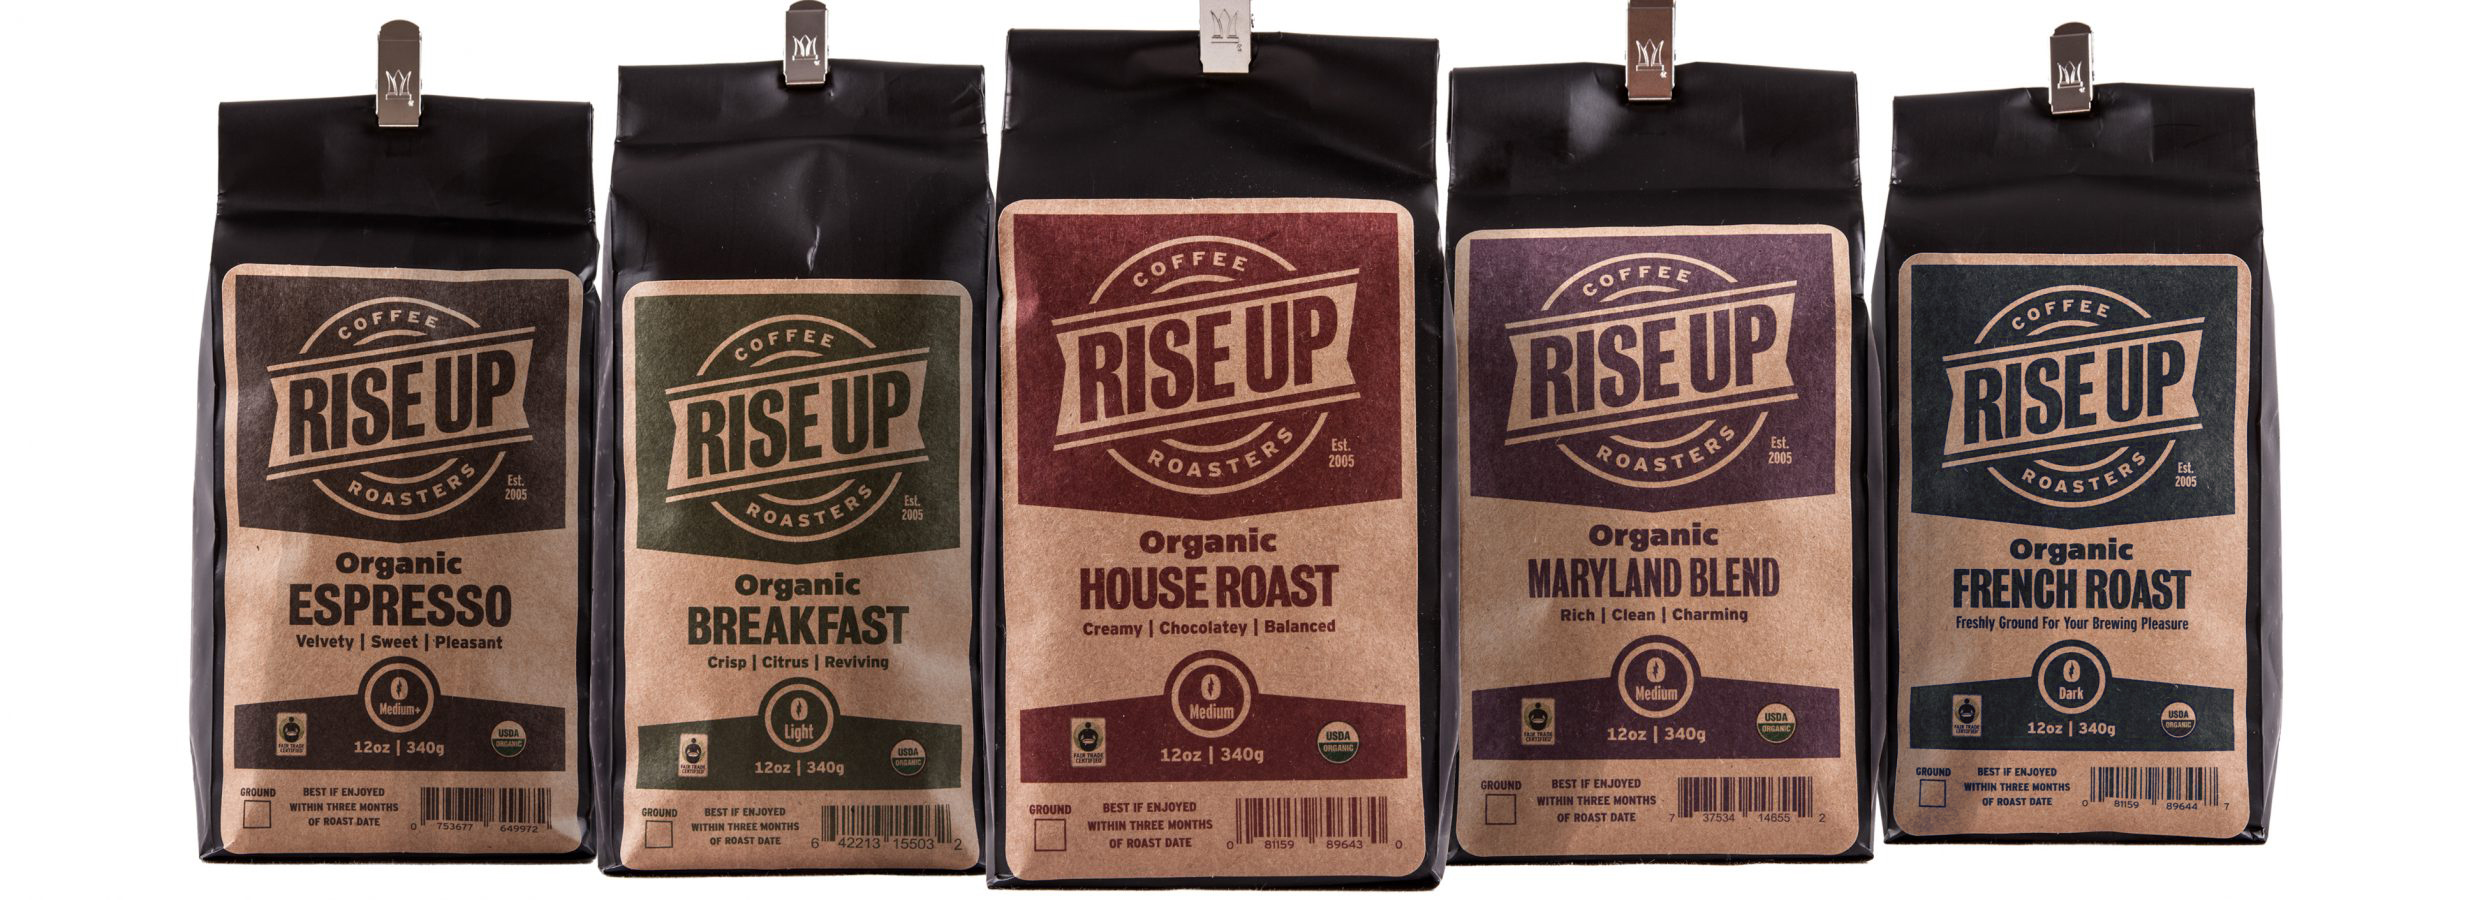 These five coffees make up the core line of retail coffee varieties offered by Rise Up Coffee Roasters.